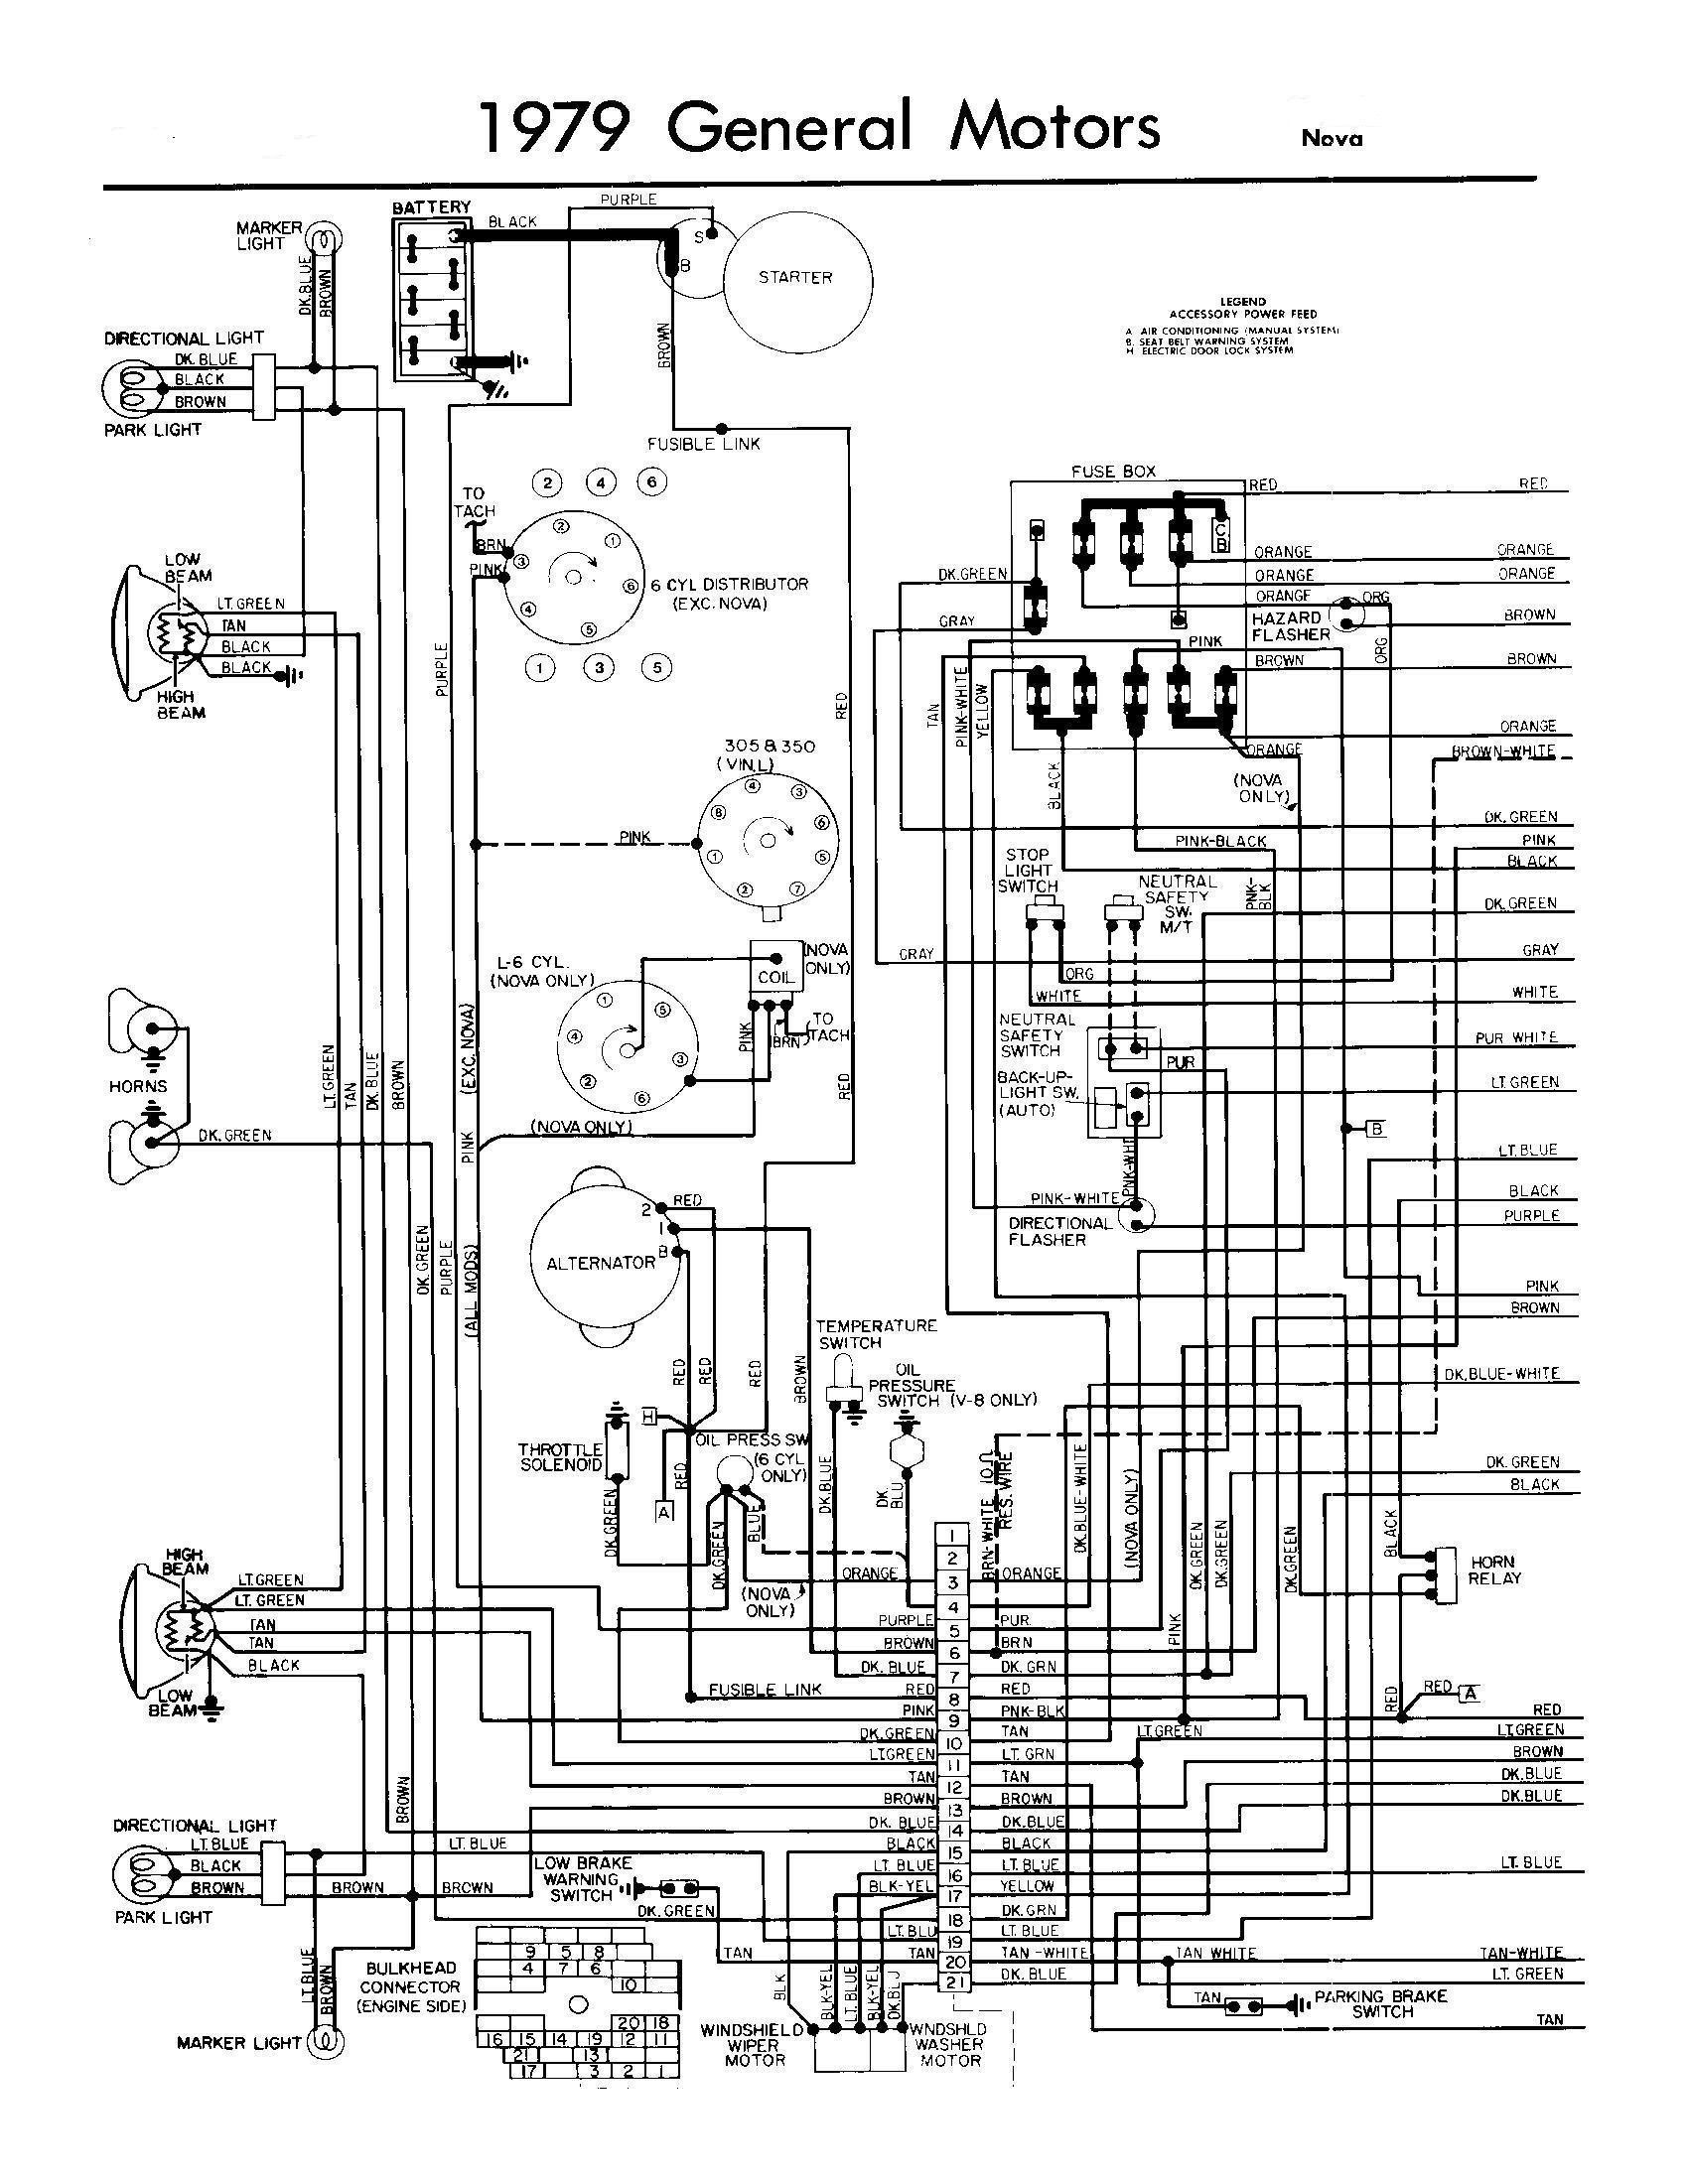 1984 chevy silverado ac wiring diagram in depth wiring diagrams u2022 rh heyhan co 2003 silverado ac wiring diagram 2005 silverado ac wiring diagram